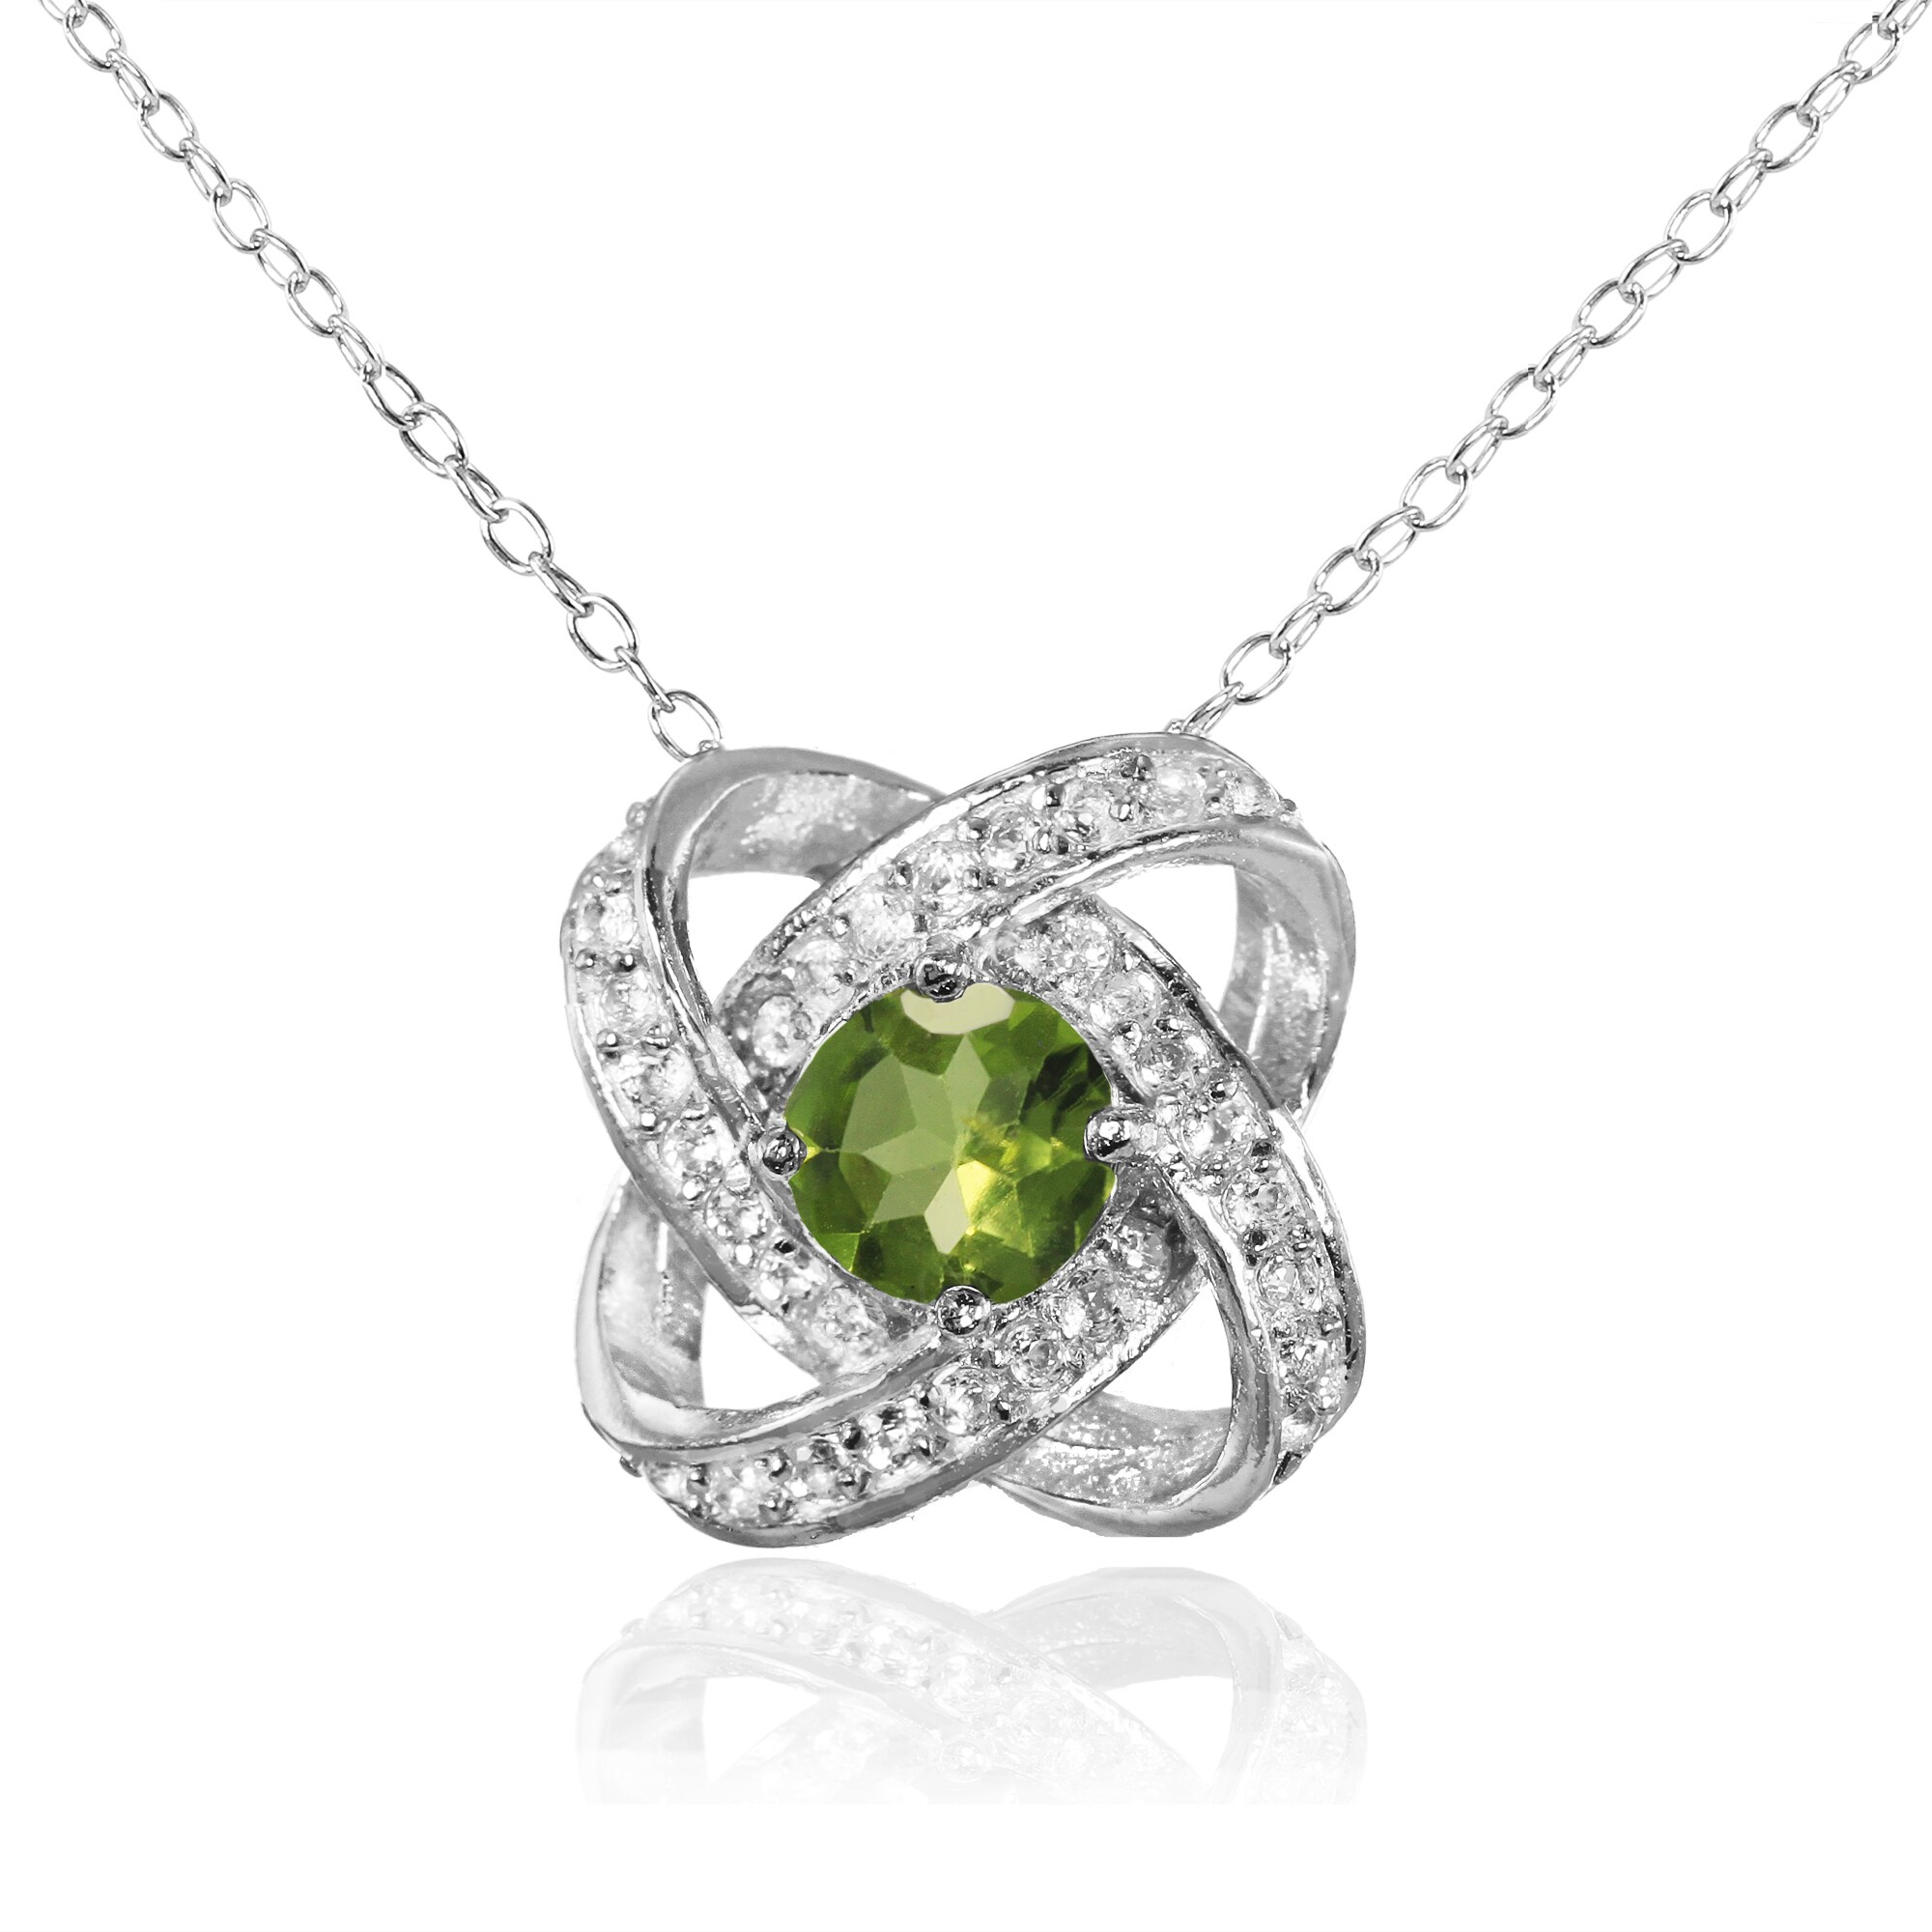 set natural il j jewels solitaire colombian birthstone emerald stone may r gold fullxfull product bezel necklace cts pendant